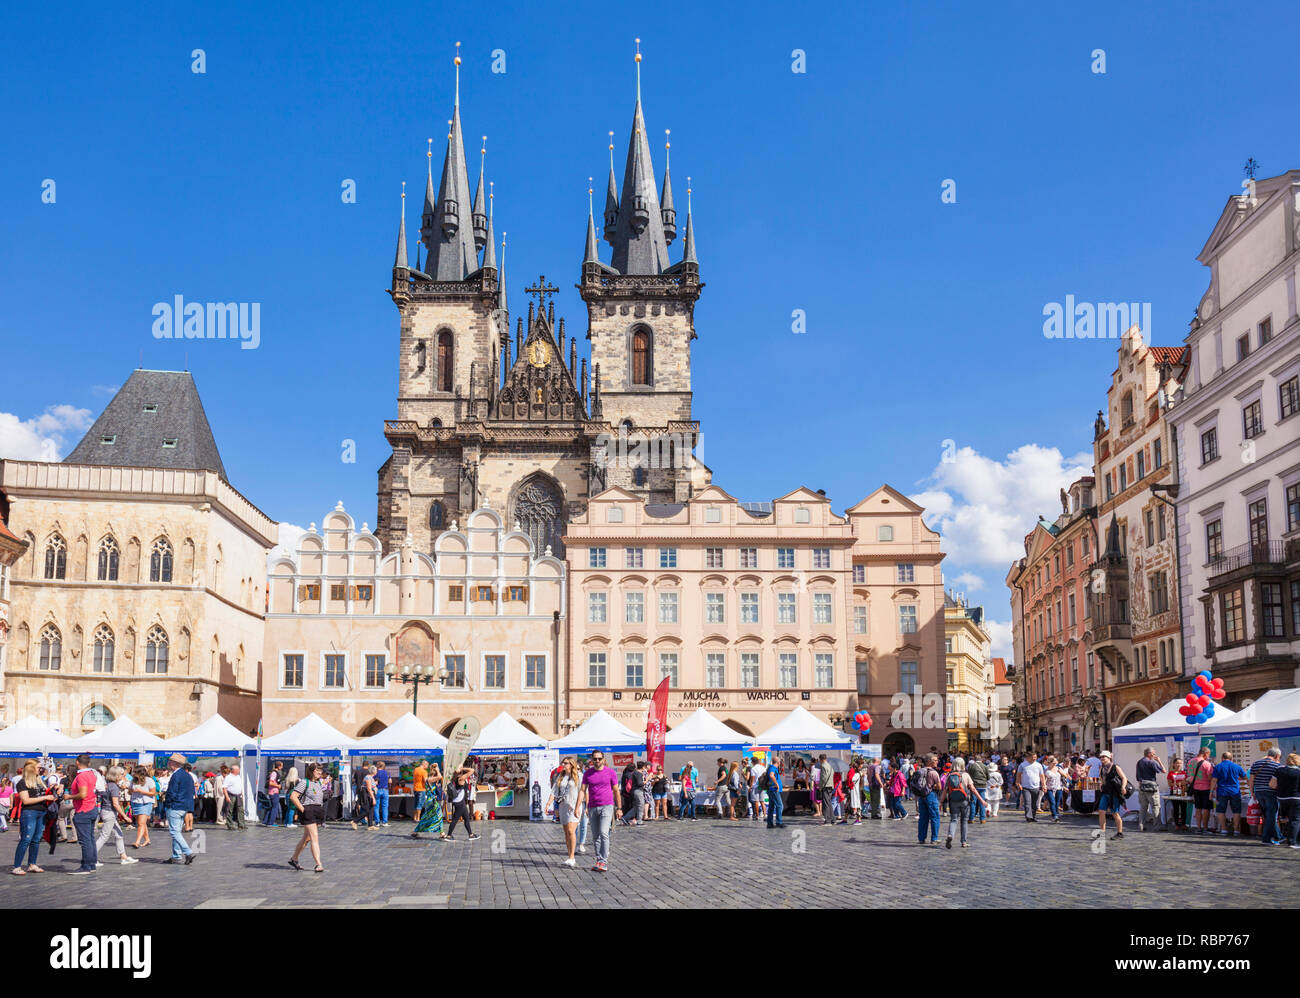 Prague Tyn church Front view of The Church of Our Lady Before Tyn in the Old Town Square Staromestske Namesti Staré Město Prague Czech Republic Europe - Stock Image